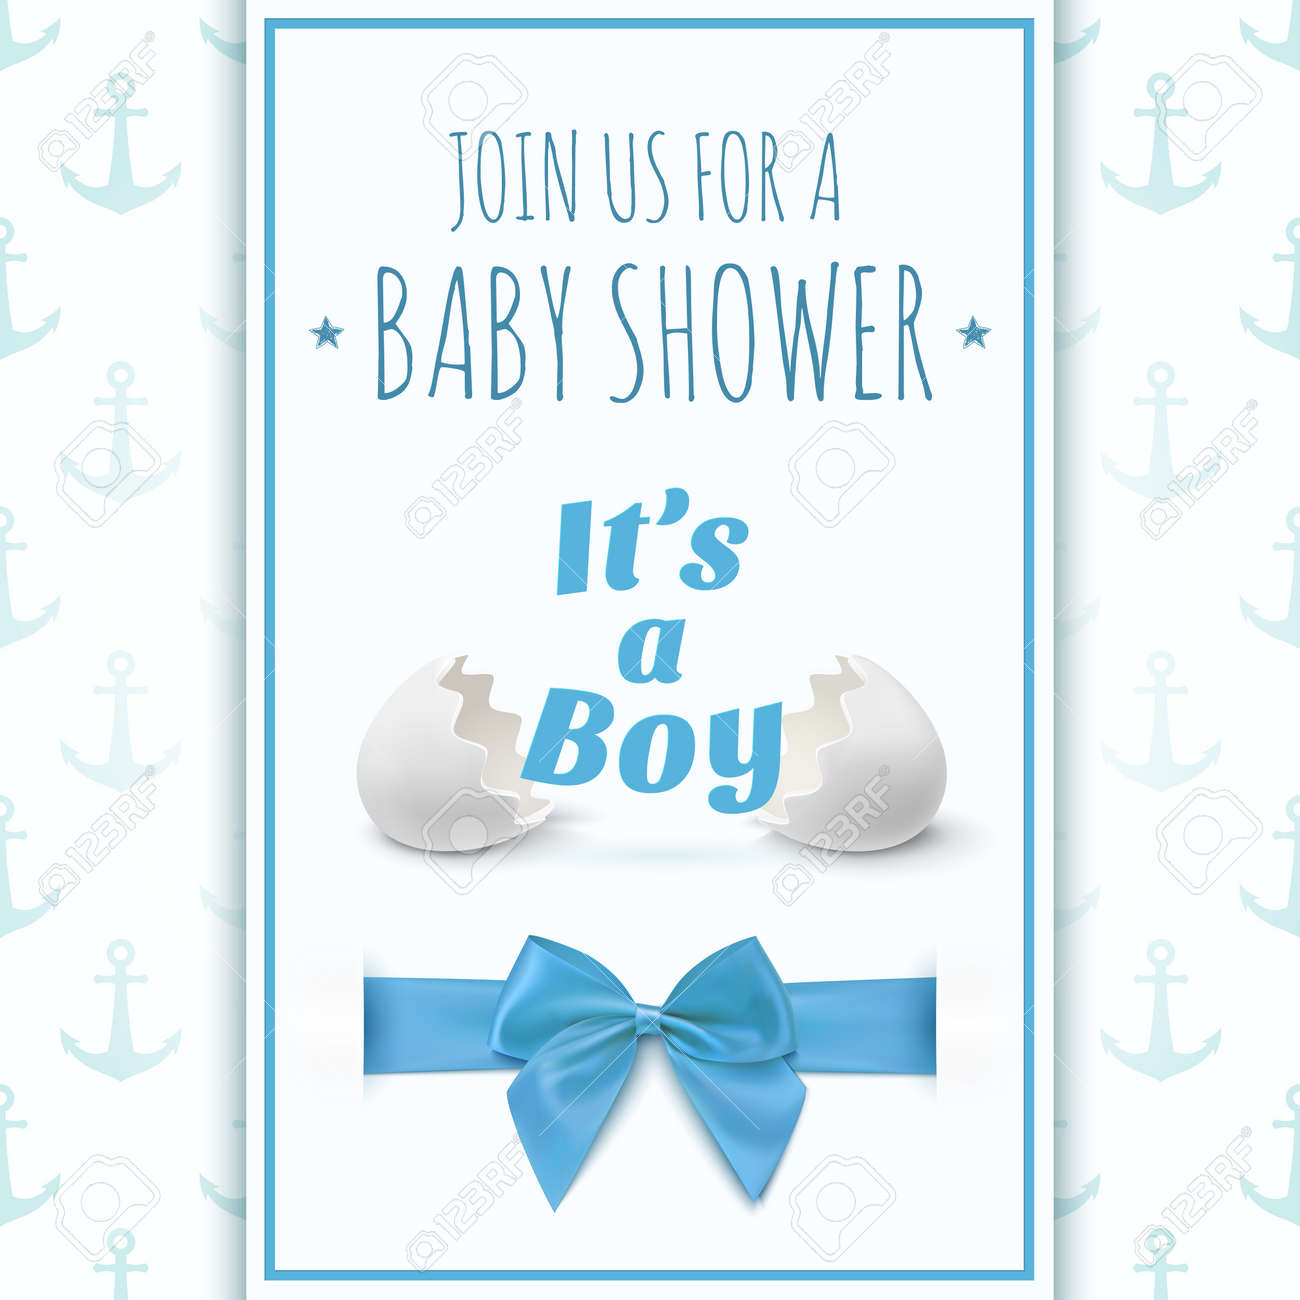 Baby shower greetings for a boy gallery baby showers decoration its a boy template for baby shower celebration or baby its a boy template for baby pronofoot35fo Gallery